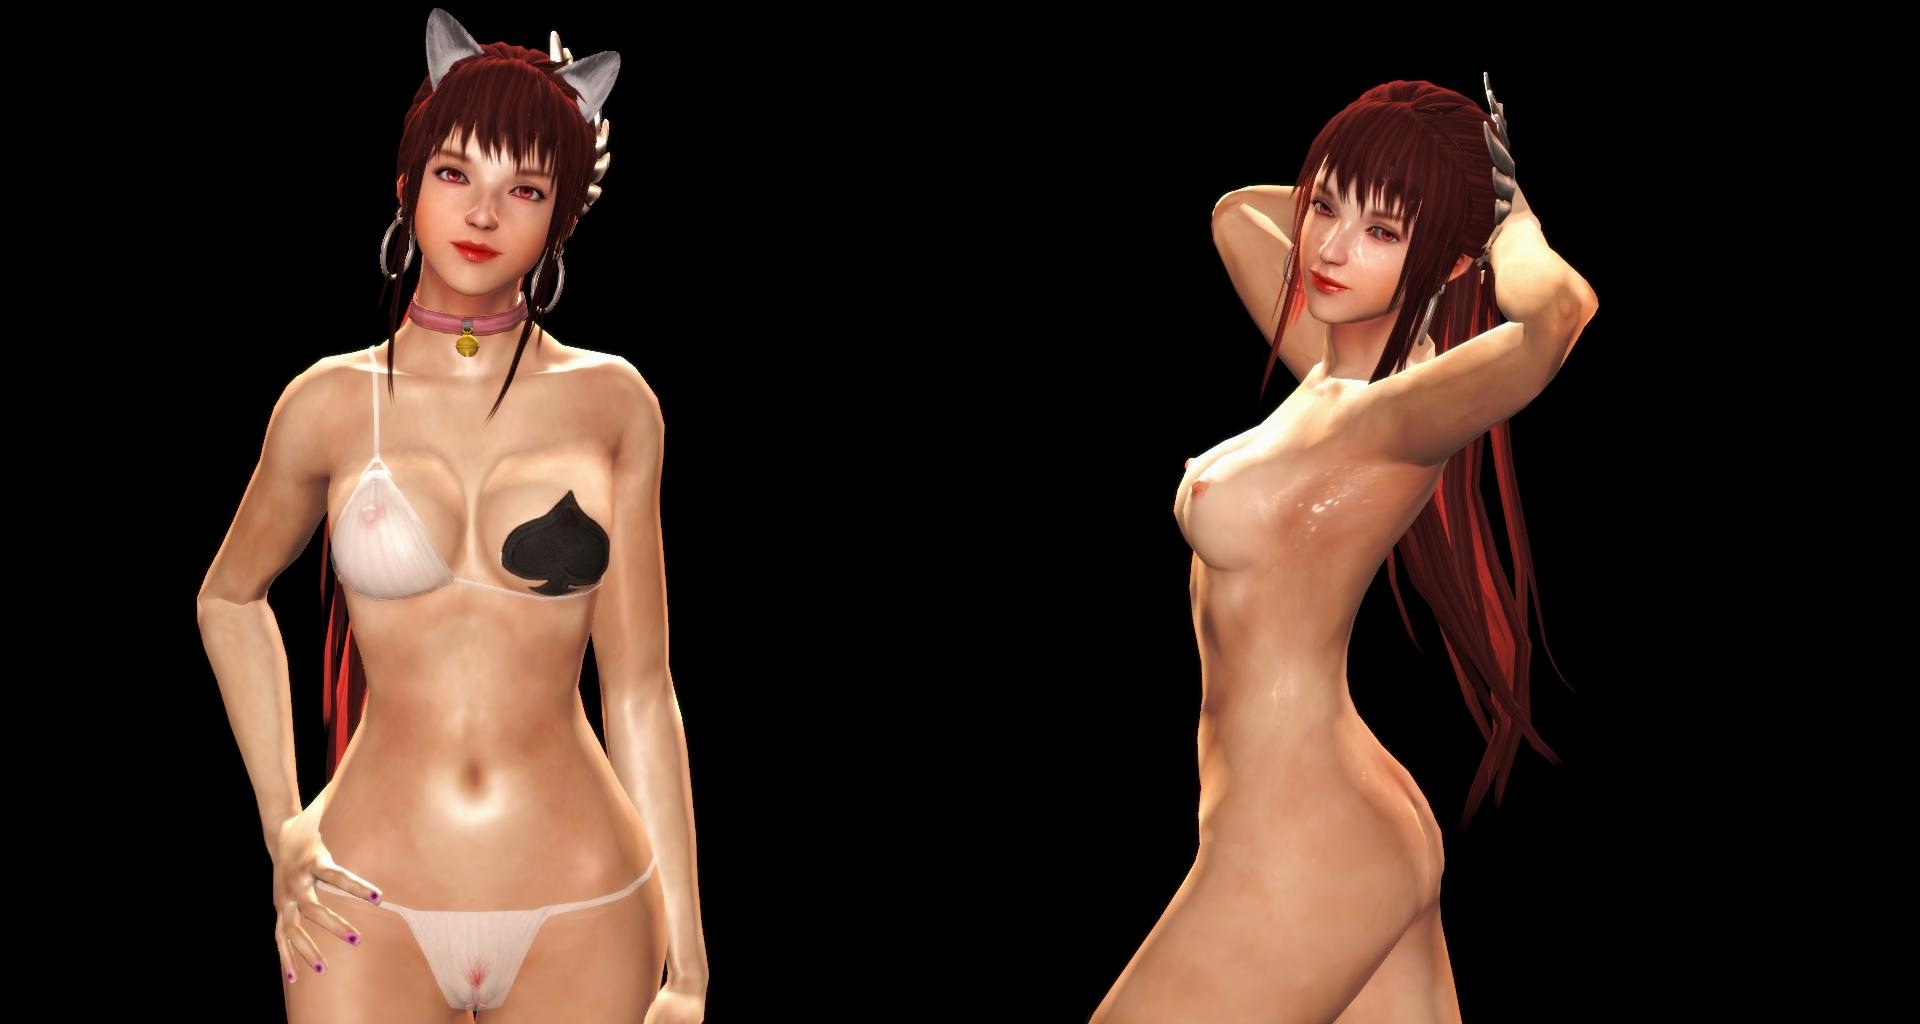 Naked in vindictus smut images